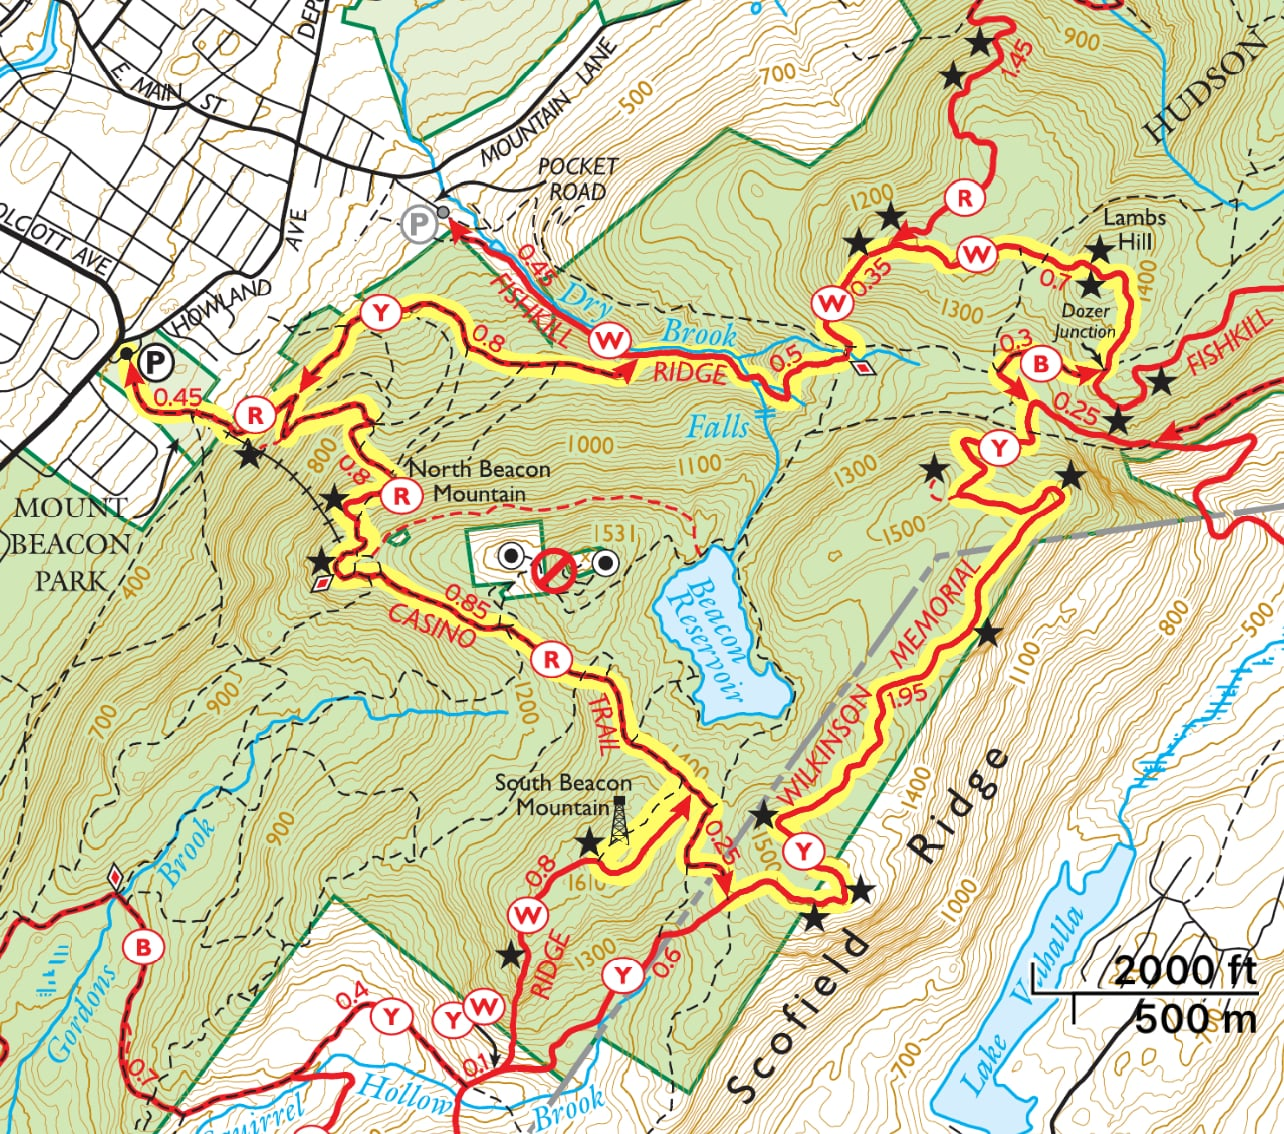 Mount Beacon and Lambs Hill Trail Map